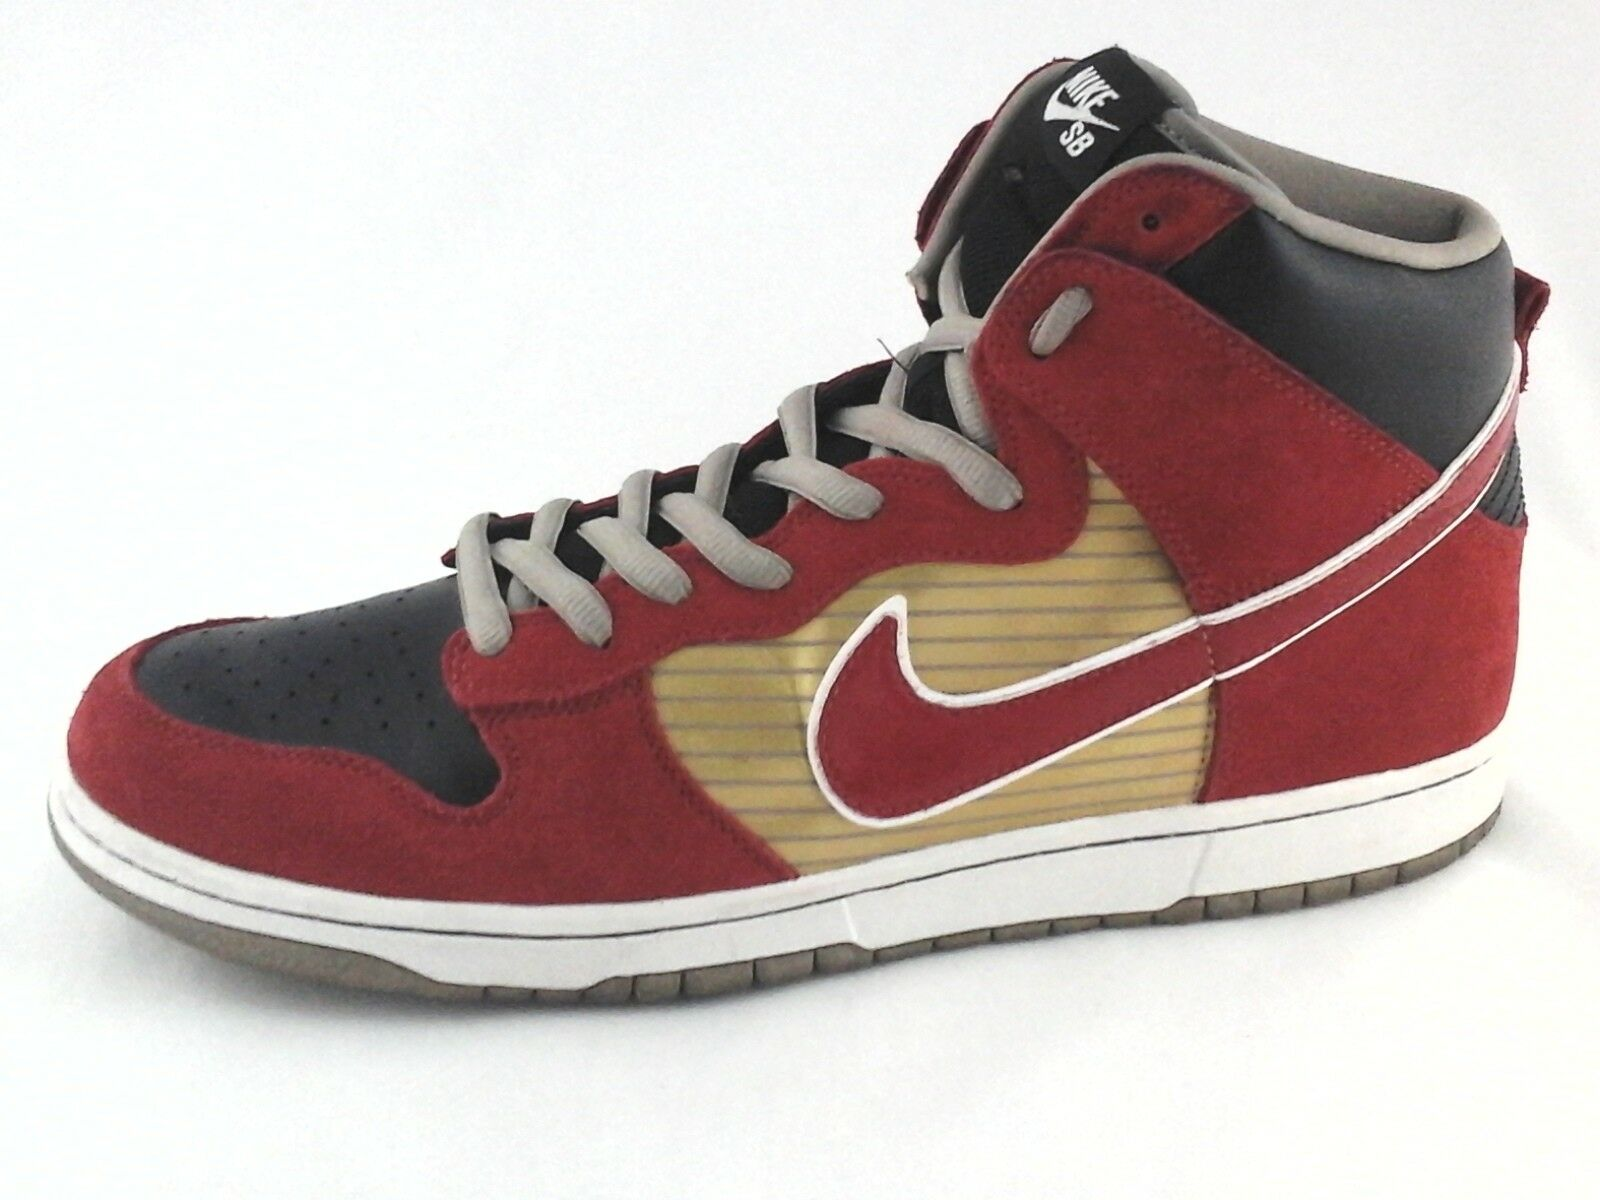 NIKE SB High Top shoes Red gold Black 305050-701 Sneakers Men's US 13  47.5 RARE